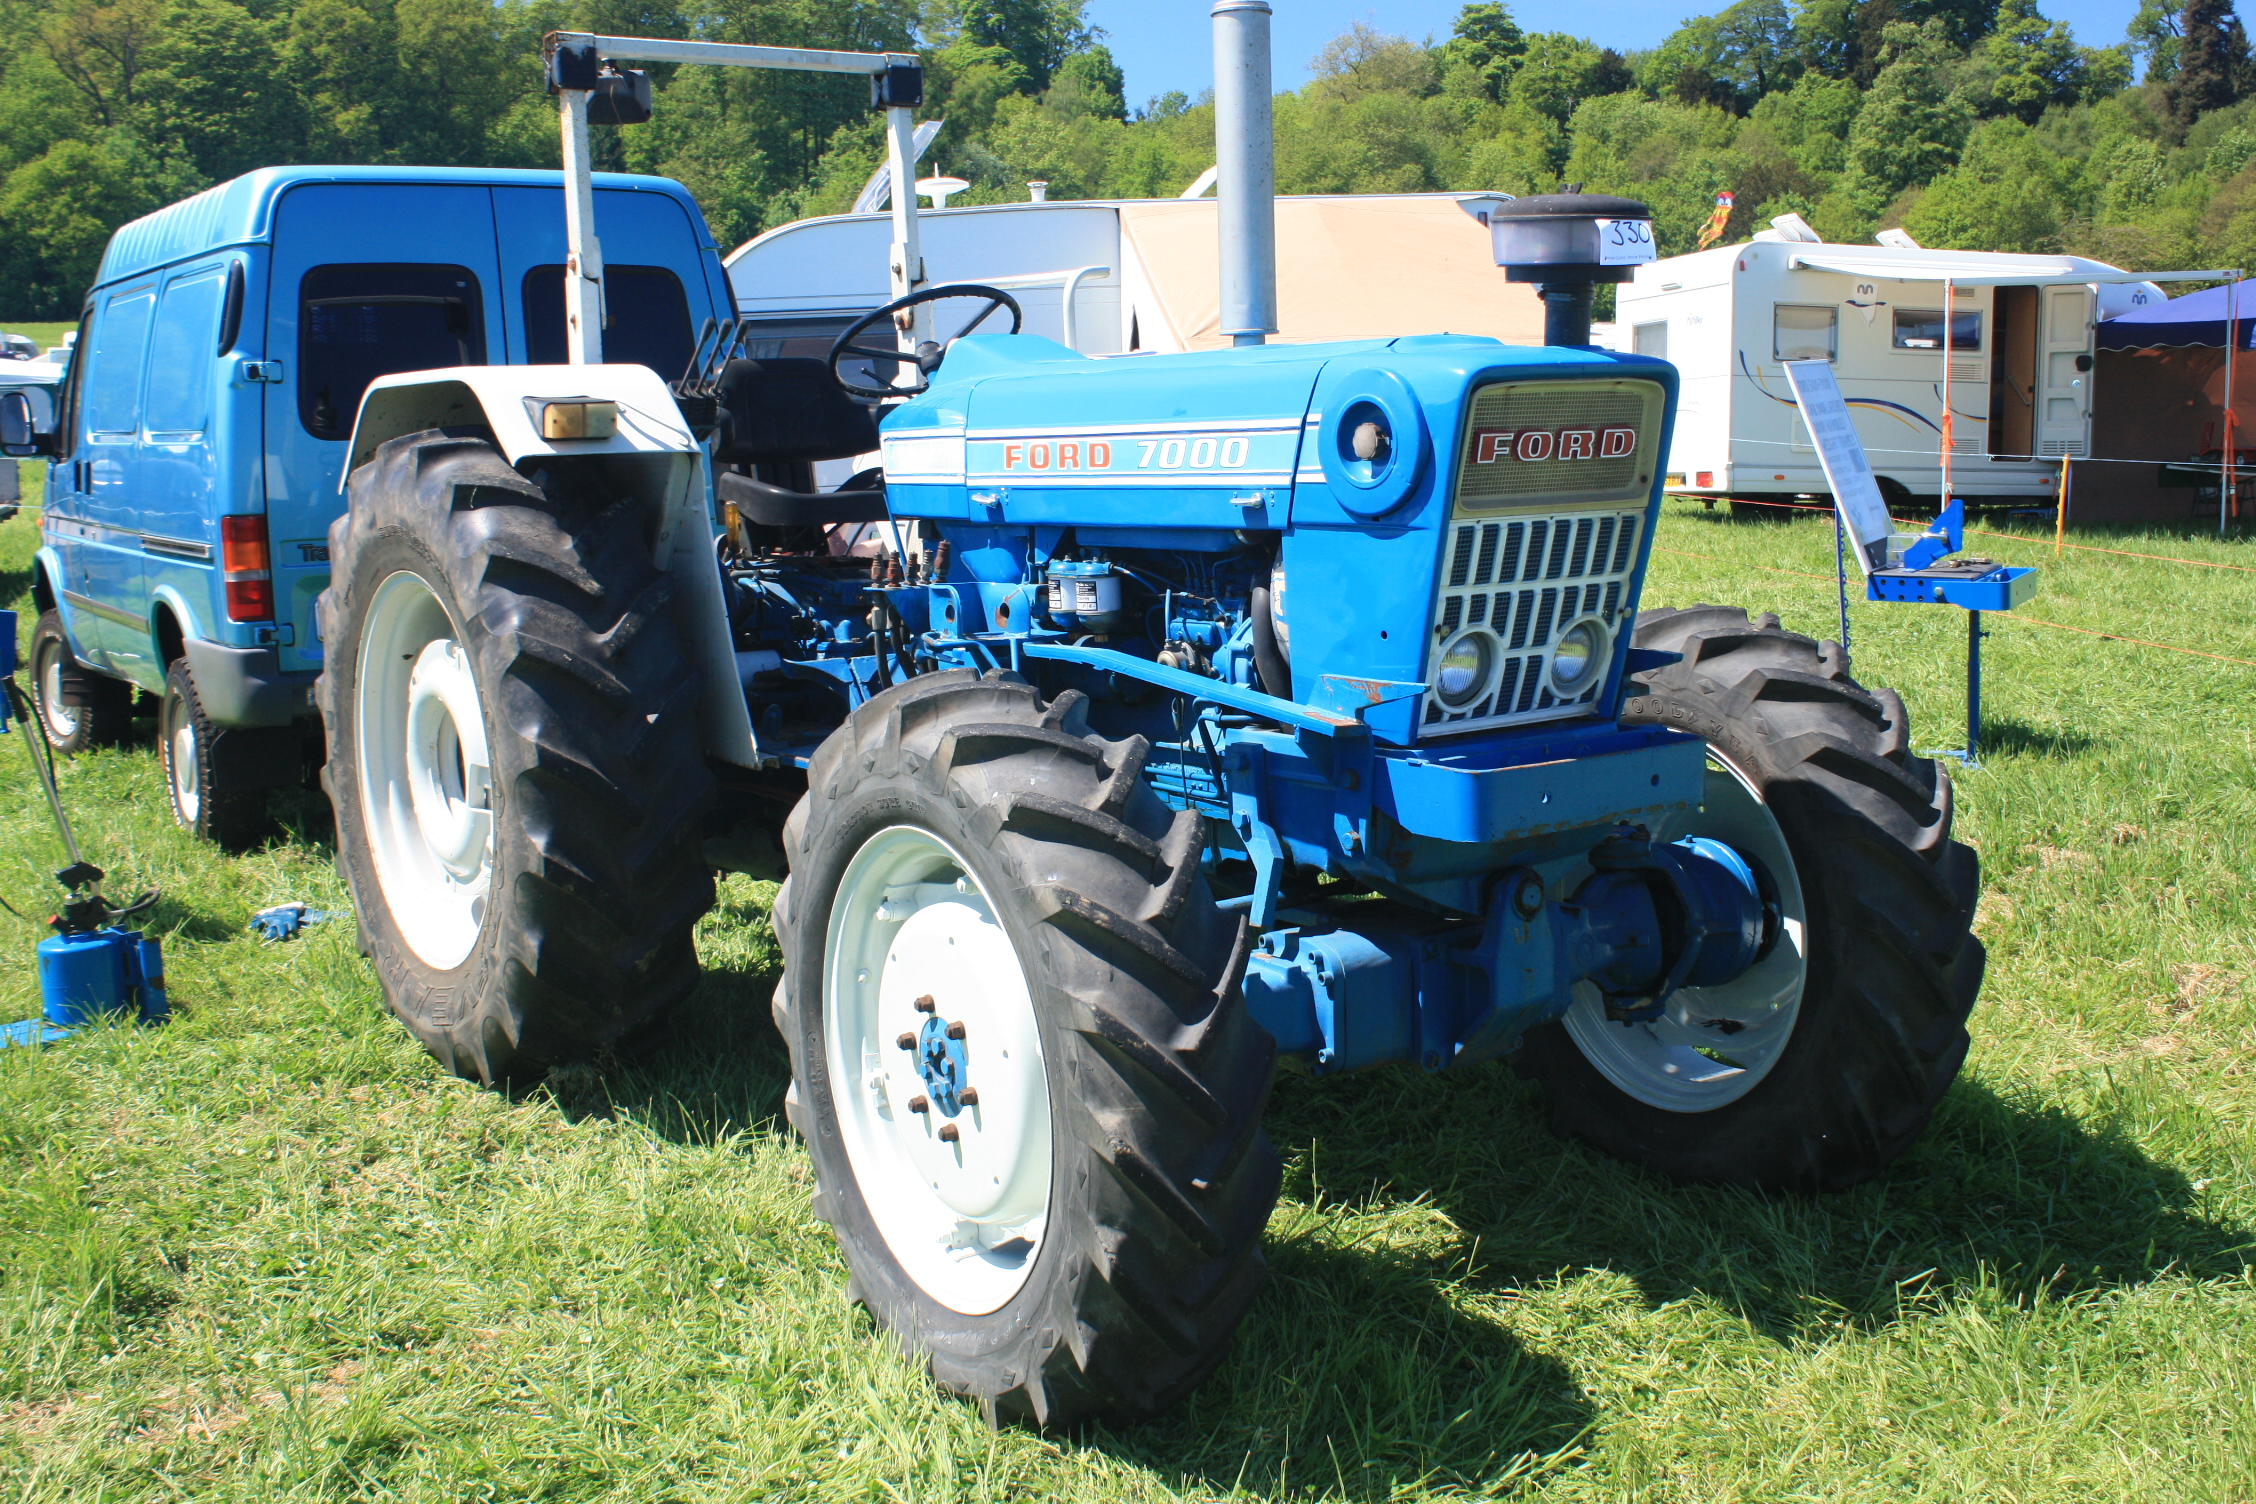 Ford 4000 Tractor Fenders : Ford tractor autos we